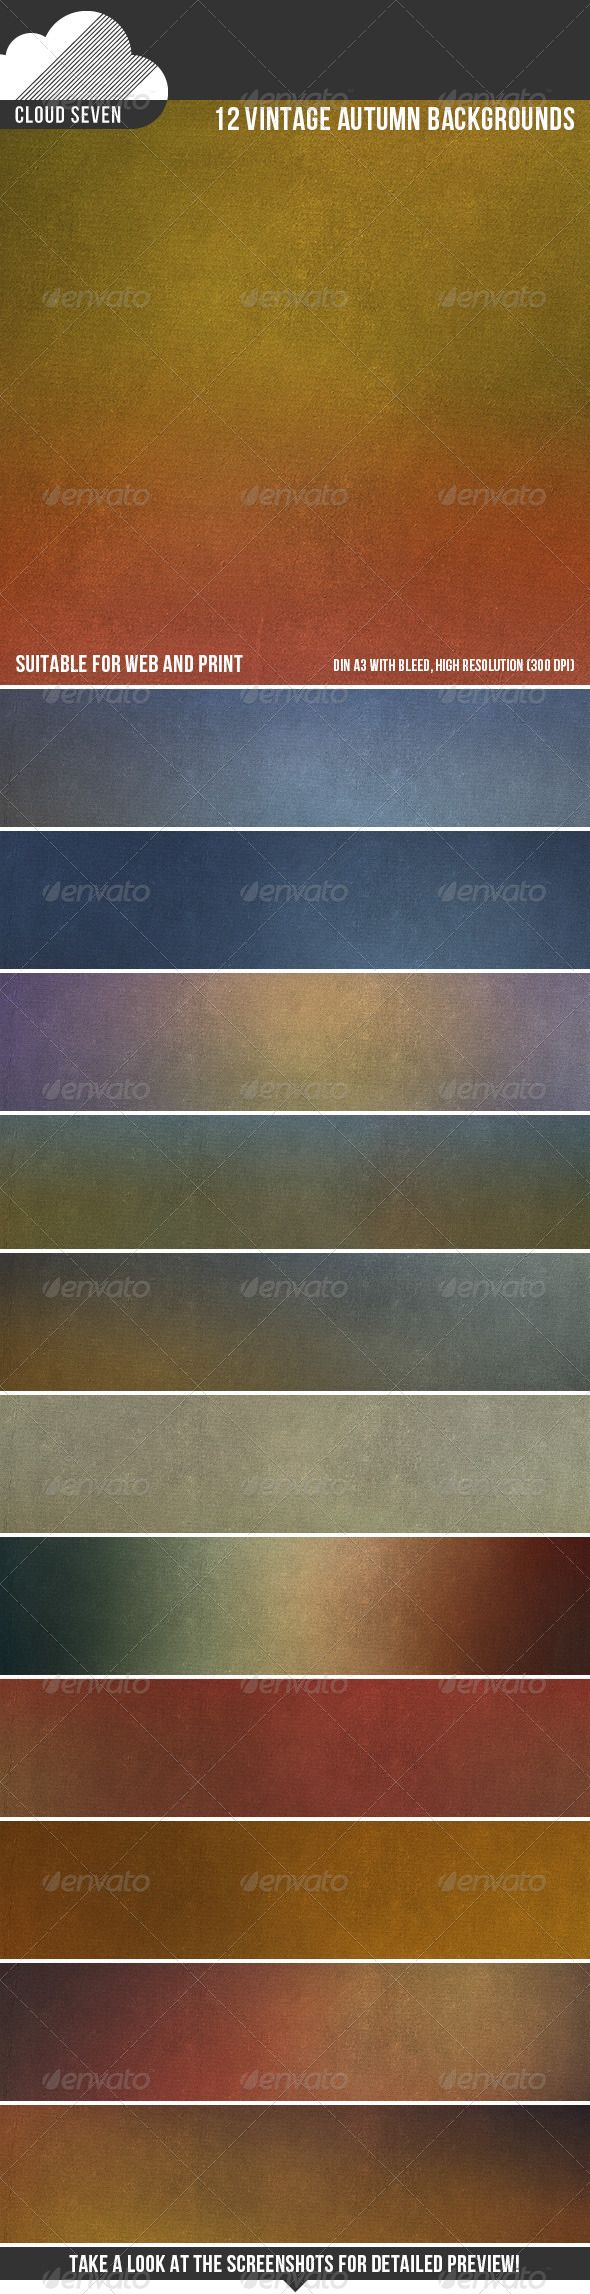 12 Vintage Autumn Backgrounds  #GraphicRiver         12 colourful, multipurpose backgrounds. Professional and carefully crafted with an eye on usability. Perfect for web and print! Features: • 12 different background images • High resolution: 5031 px x 3579 px, 300 dpi • Print quality • Print size: DIN A3 with bleed • Create your own colours using Hue/Saturation  PLEASE RATE IF YOU LIKE IT.      Created: 24August13 GraphicsFilesIncluded: JPGImage HighResolution: Yes Layered: No…